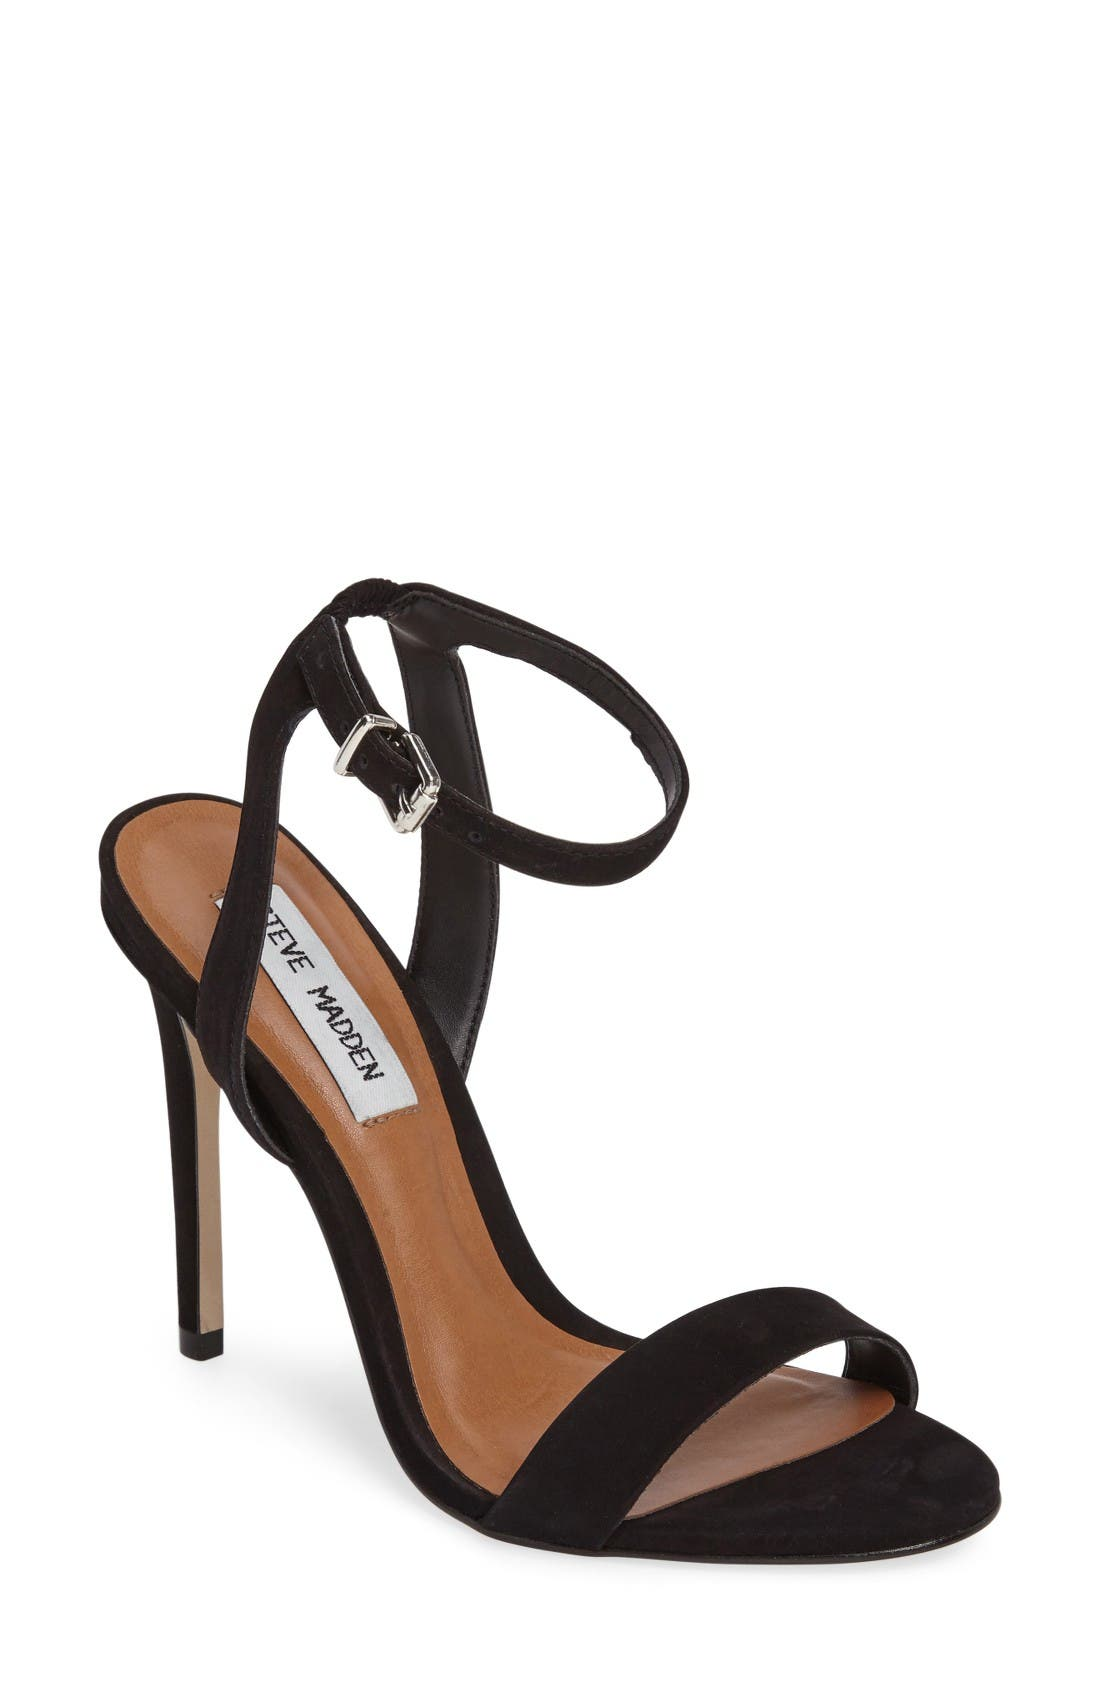 Landen Ankle Strap Sandal,                         Main,                         color, Black Nubuck Leather